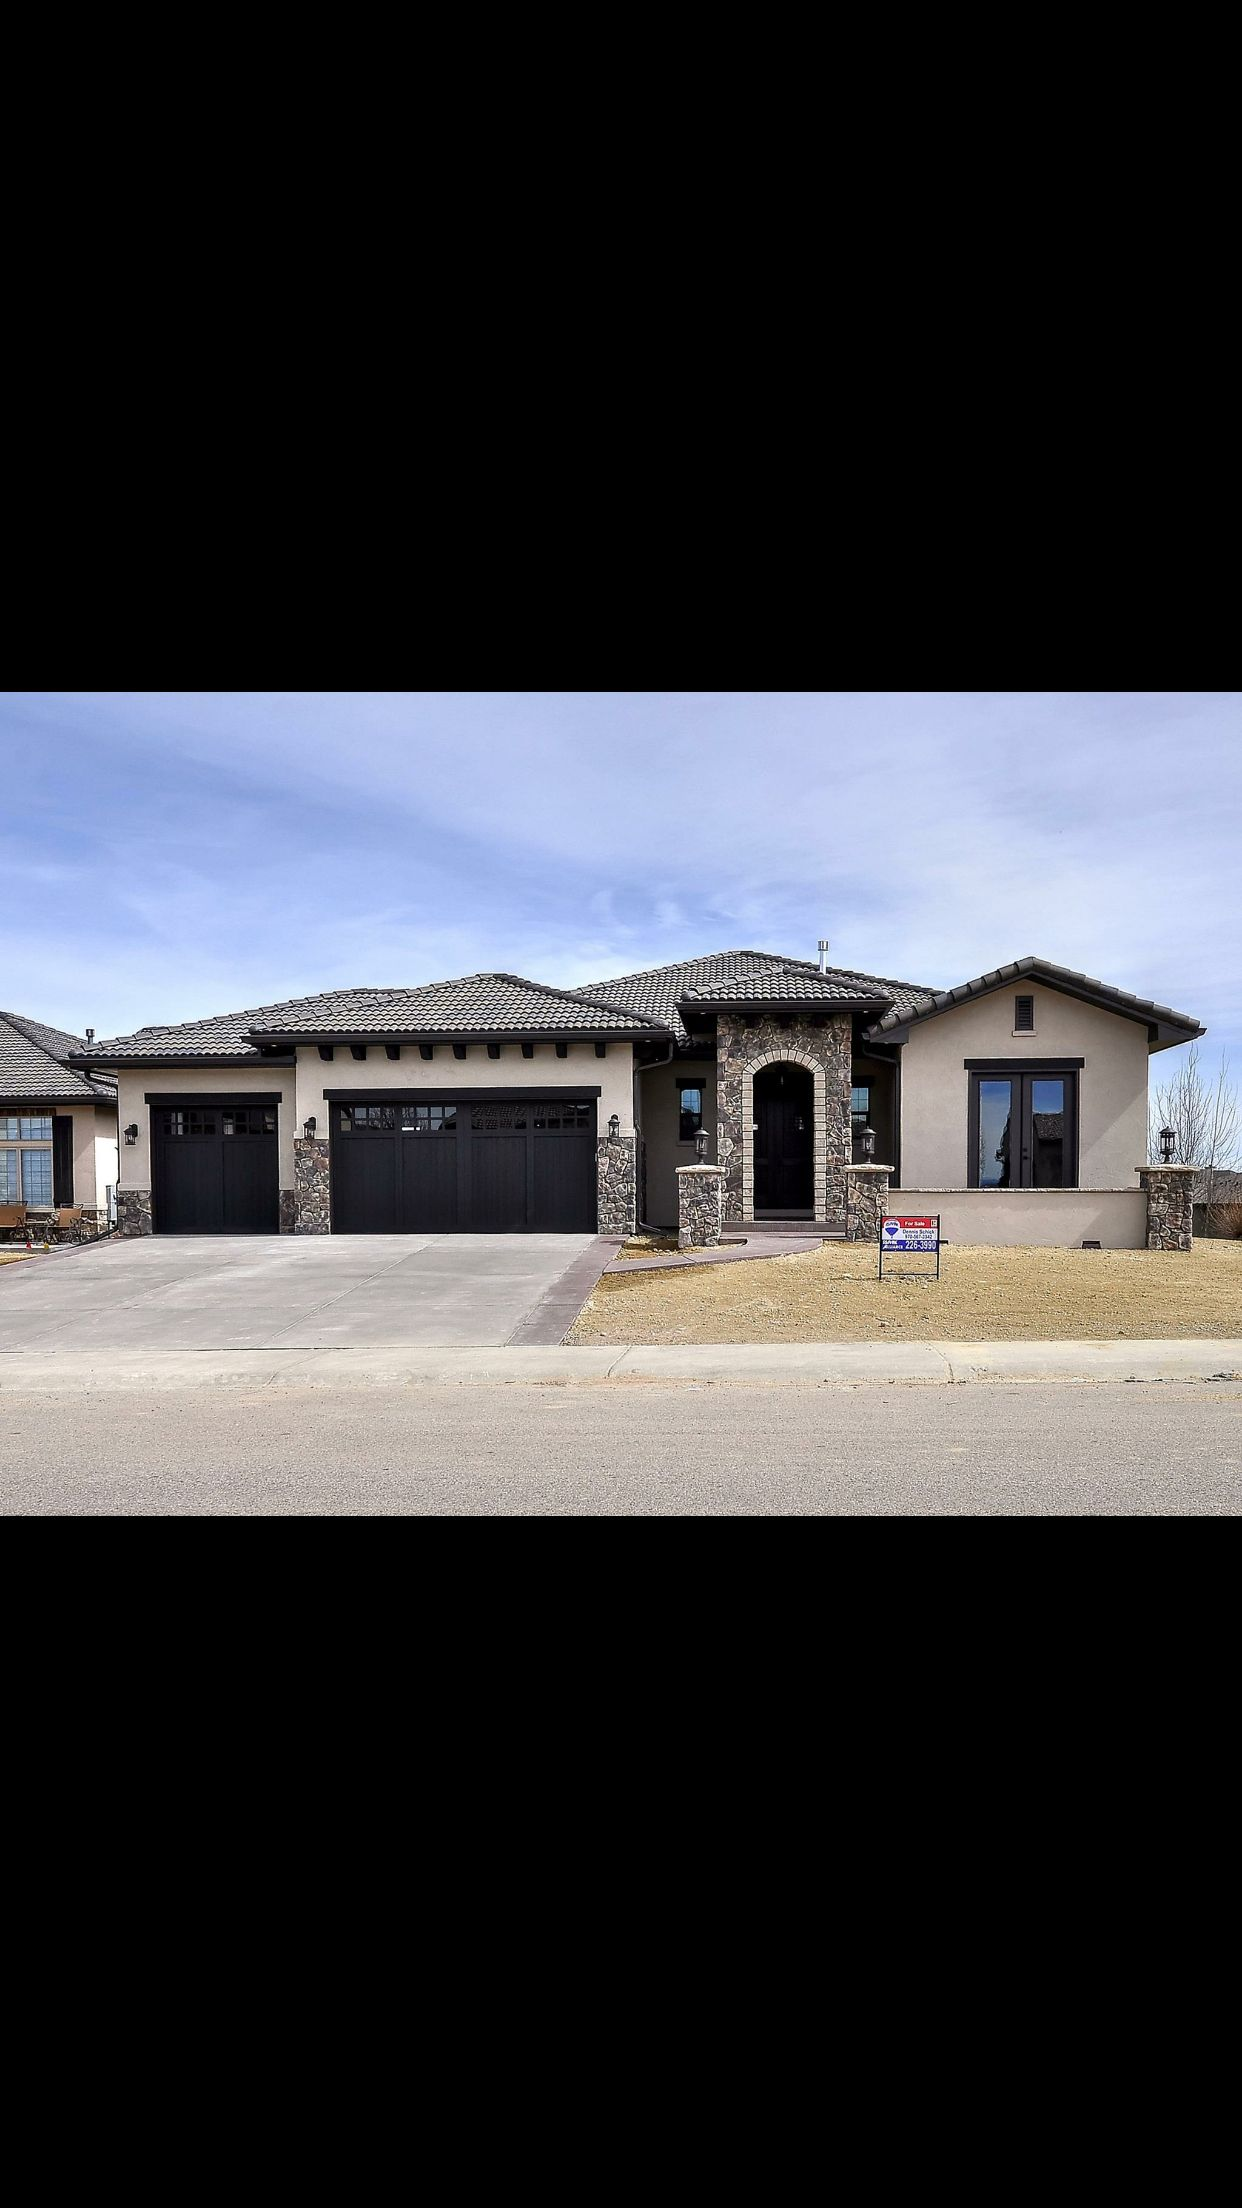 Ranch with black garage doors dream house in 2019 - Exterior paint coverage on stucco ...